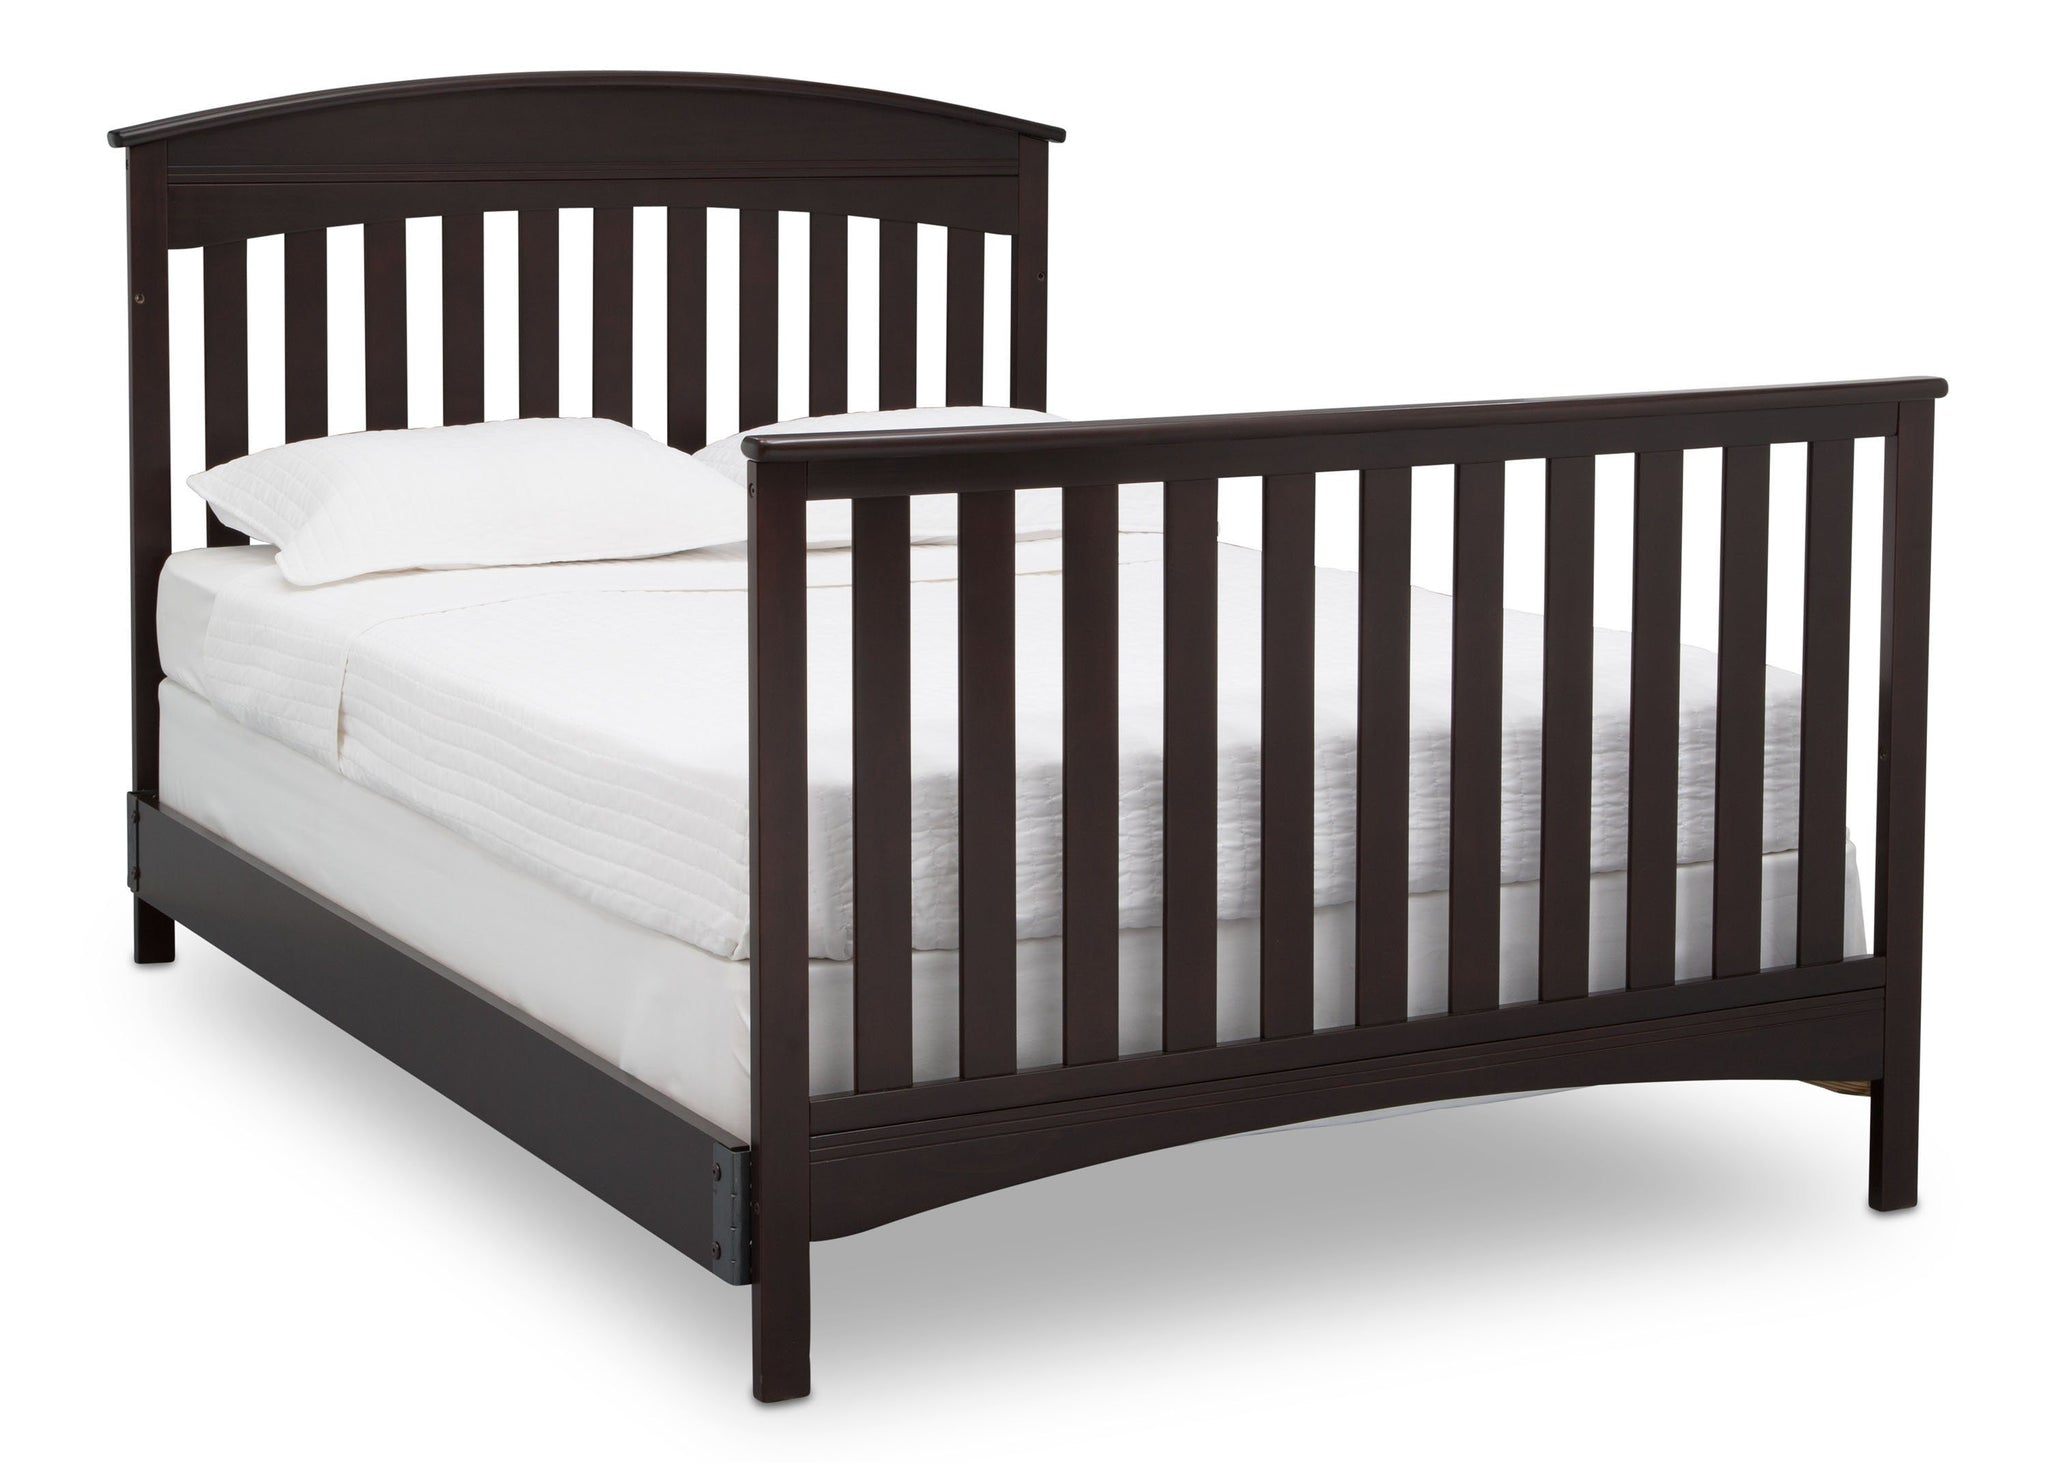 Delta Children Dark Espresso (958) Bennington Elite Arched 4-in-1 Convertible Crib, Full Size Bed, c6c